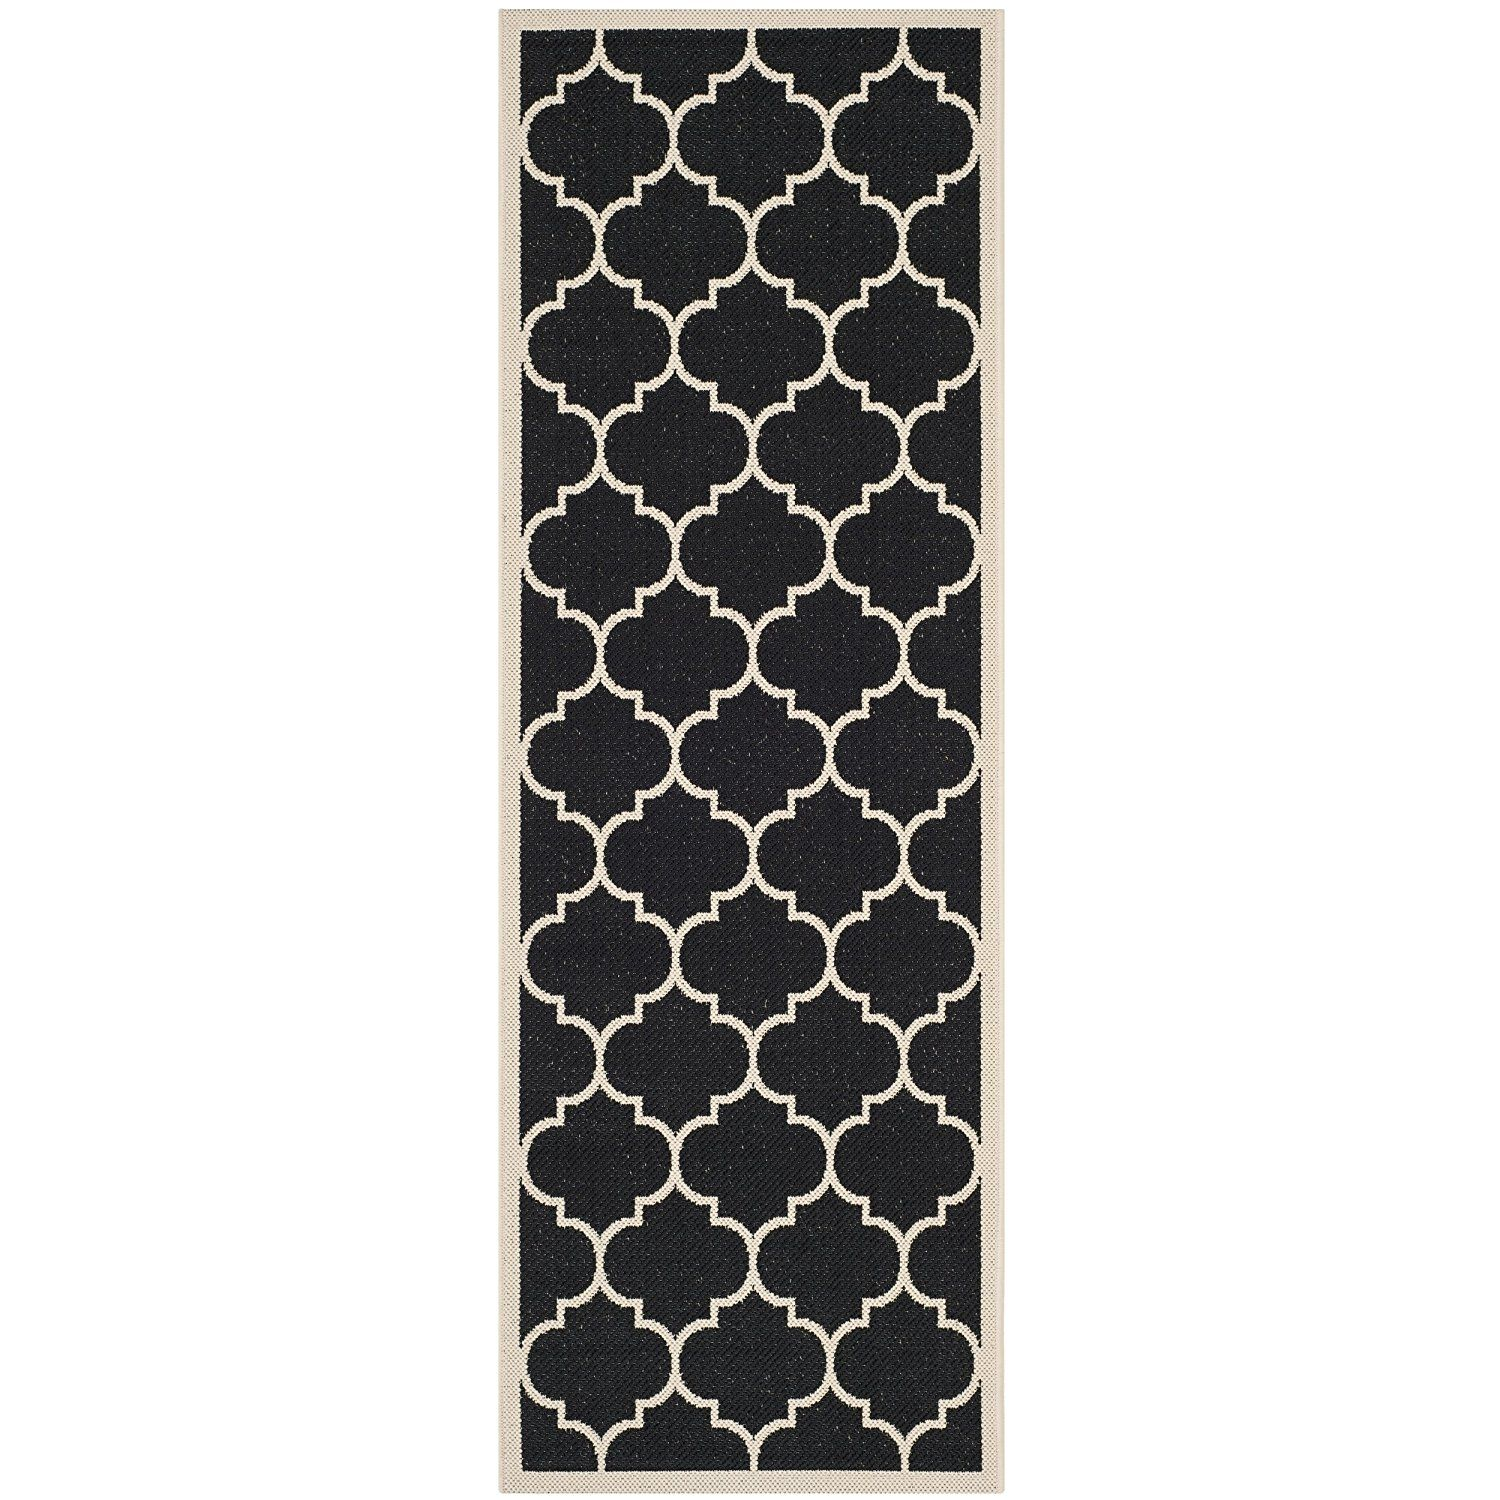 Amazon Com Safavieh Courtyard Collection Cy6914 266 Black And Beige Indoor X2f Outdoor Runner 2 Feet Indoor Outdoor Area Rugs Outdoor Runner Rug Patio Rugs